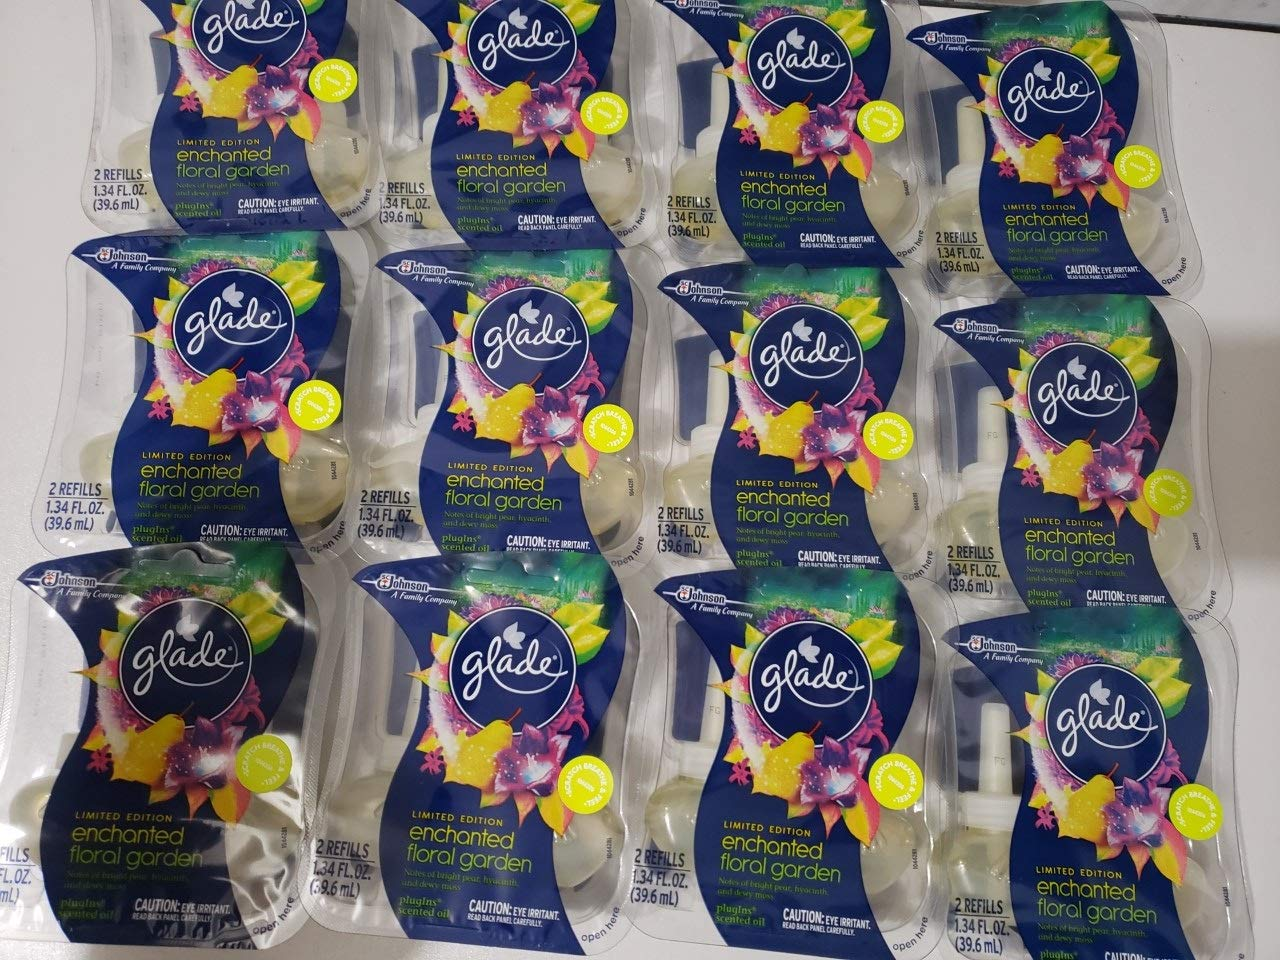 24 Glade Enchanted Floral Garden Scented Oil Refills Plugins Pear Hyacinth Moss